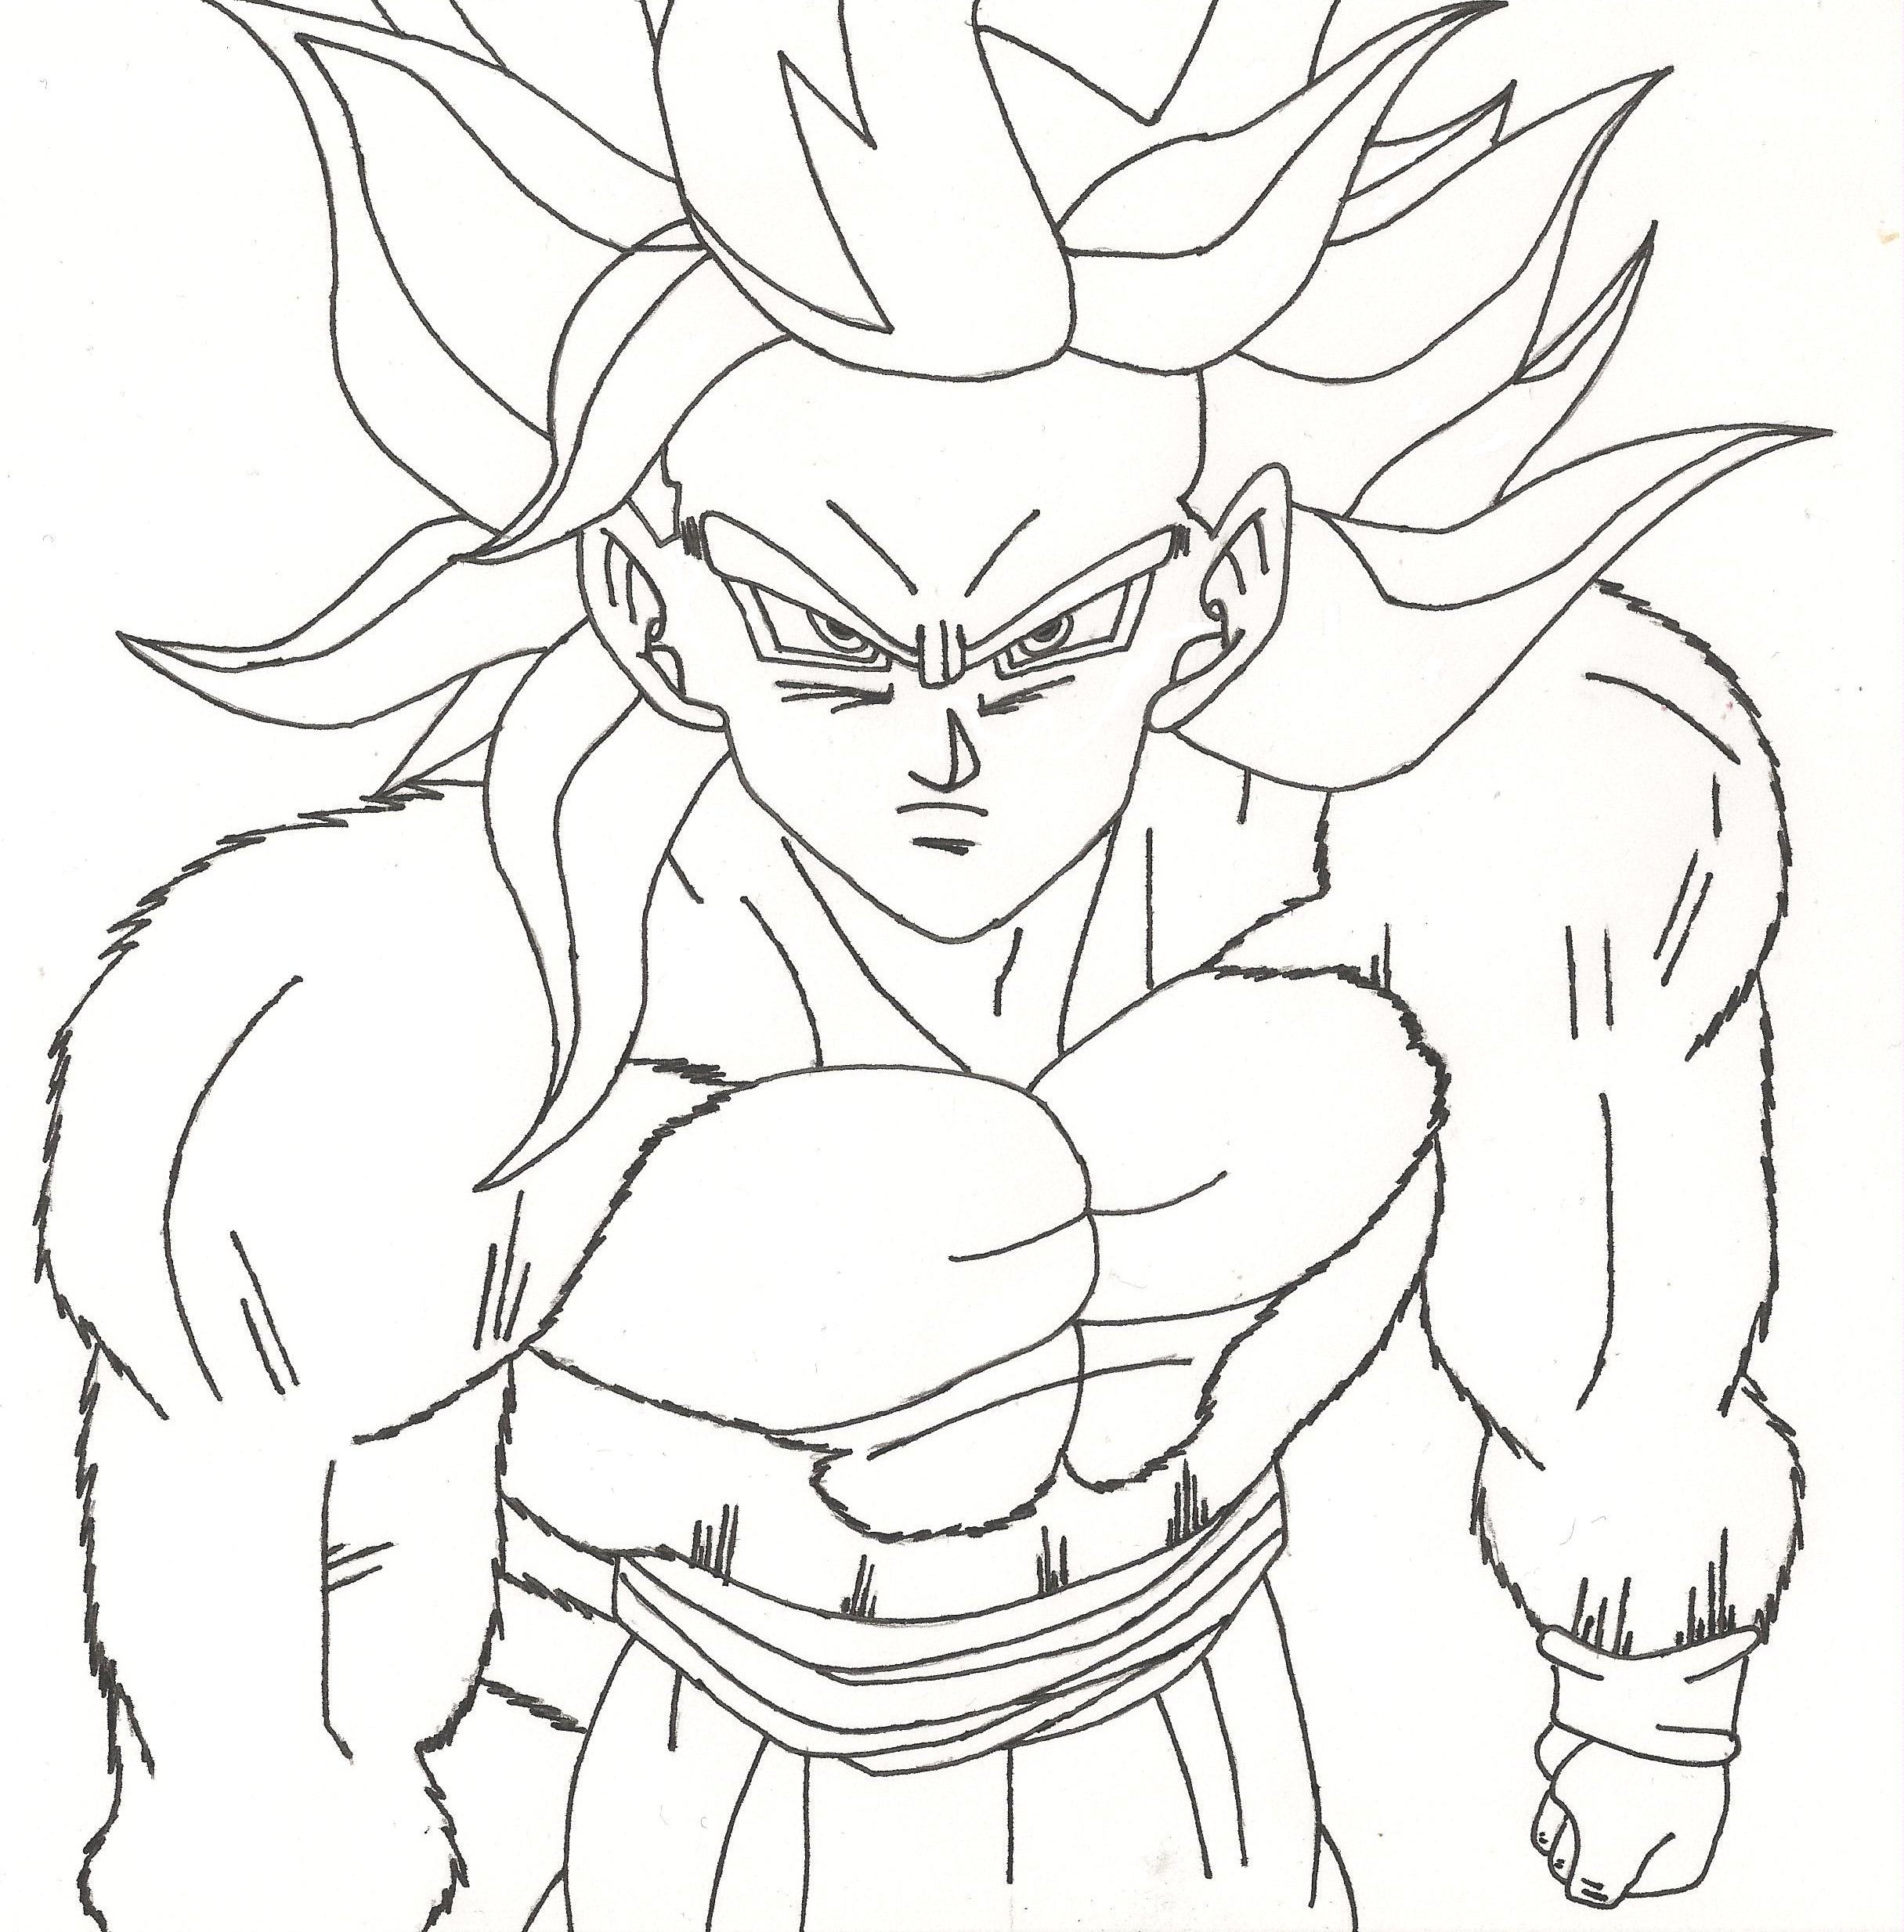 Dragon Ball Z Coloring Pages Printable  Ausmalbilder für Kinder Malvorlagen und malbuch • Dragon